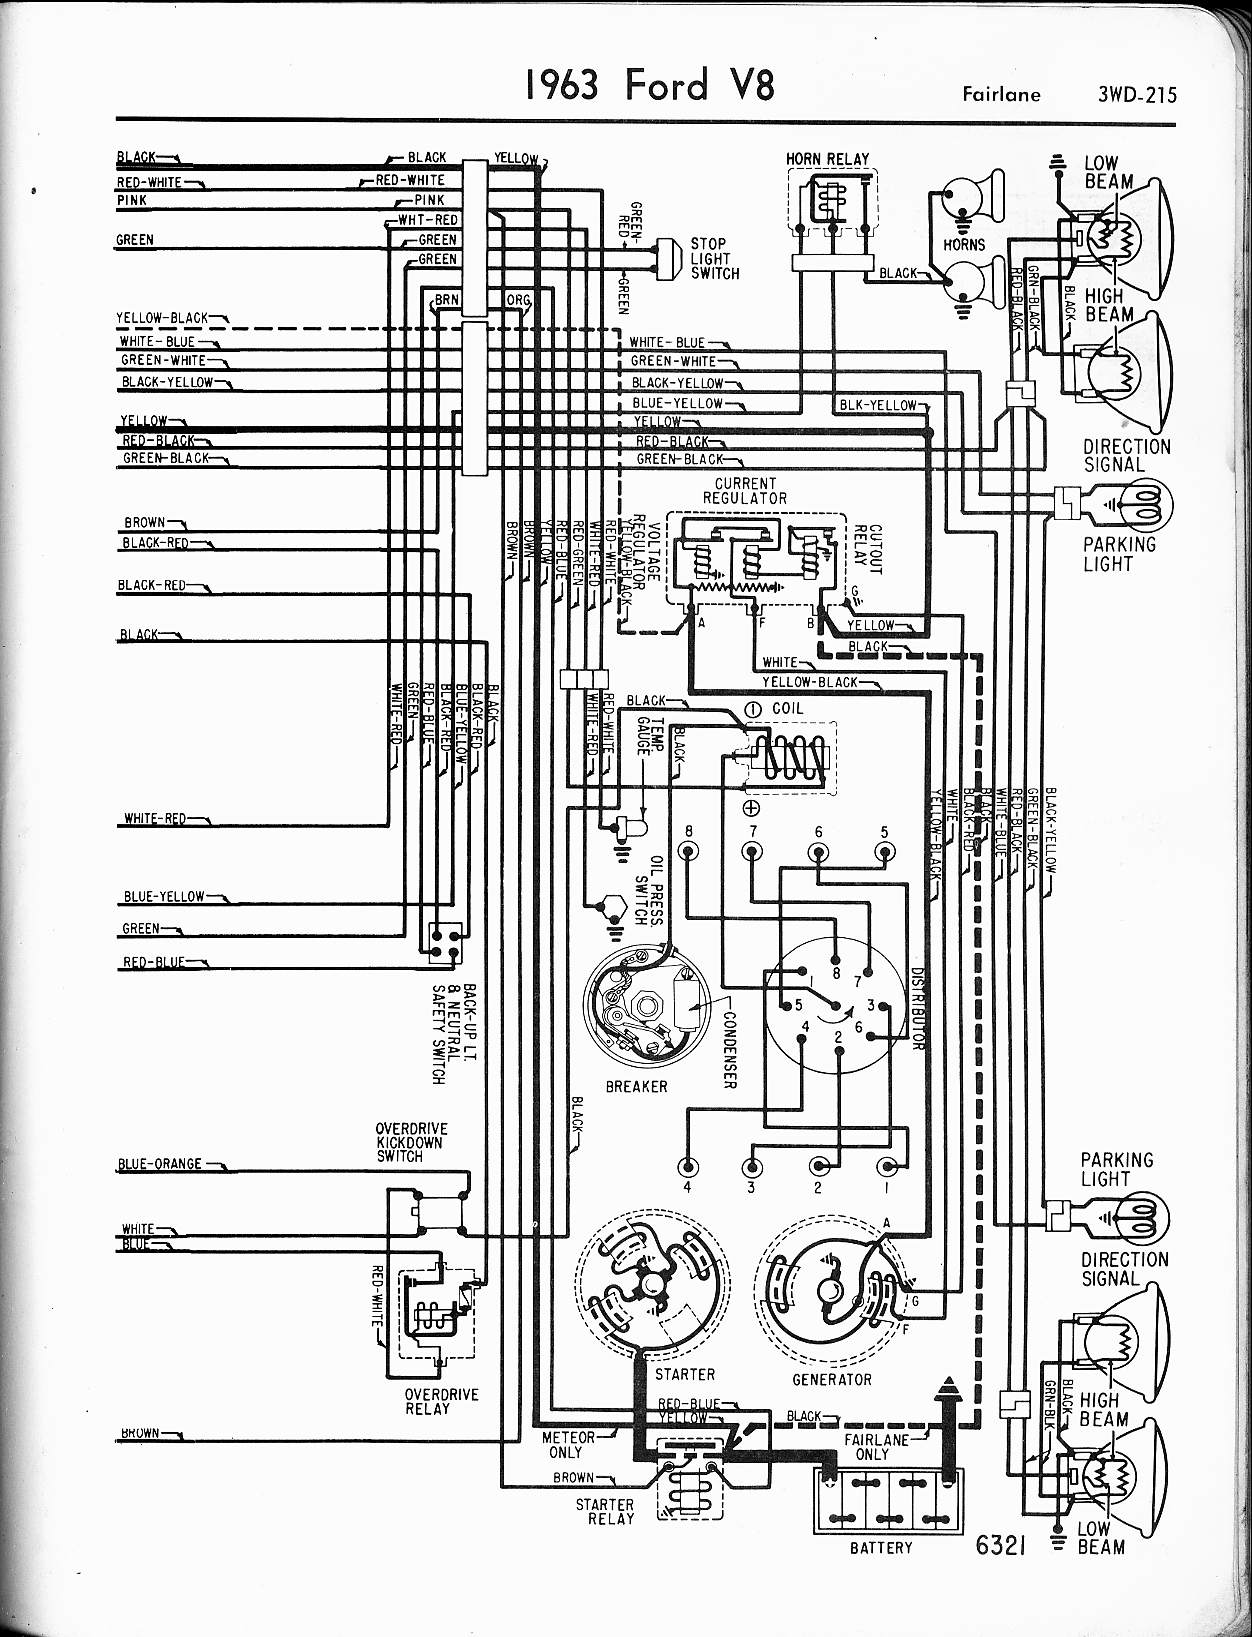 hight resolution of 65 ford galaxie fuse box wiring diagram for you 1967 ford fairlane 1964 galaxie fuse box